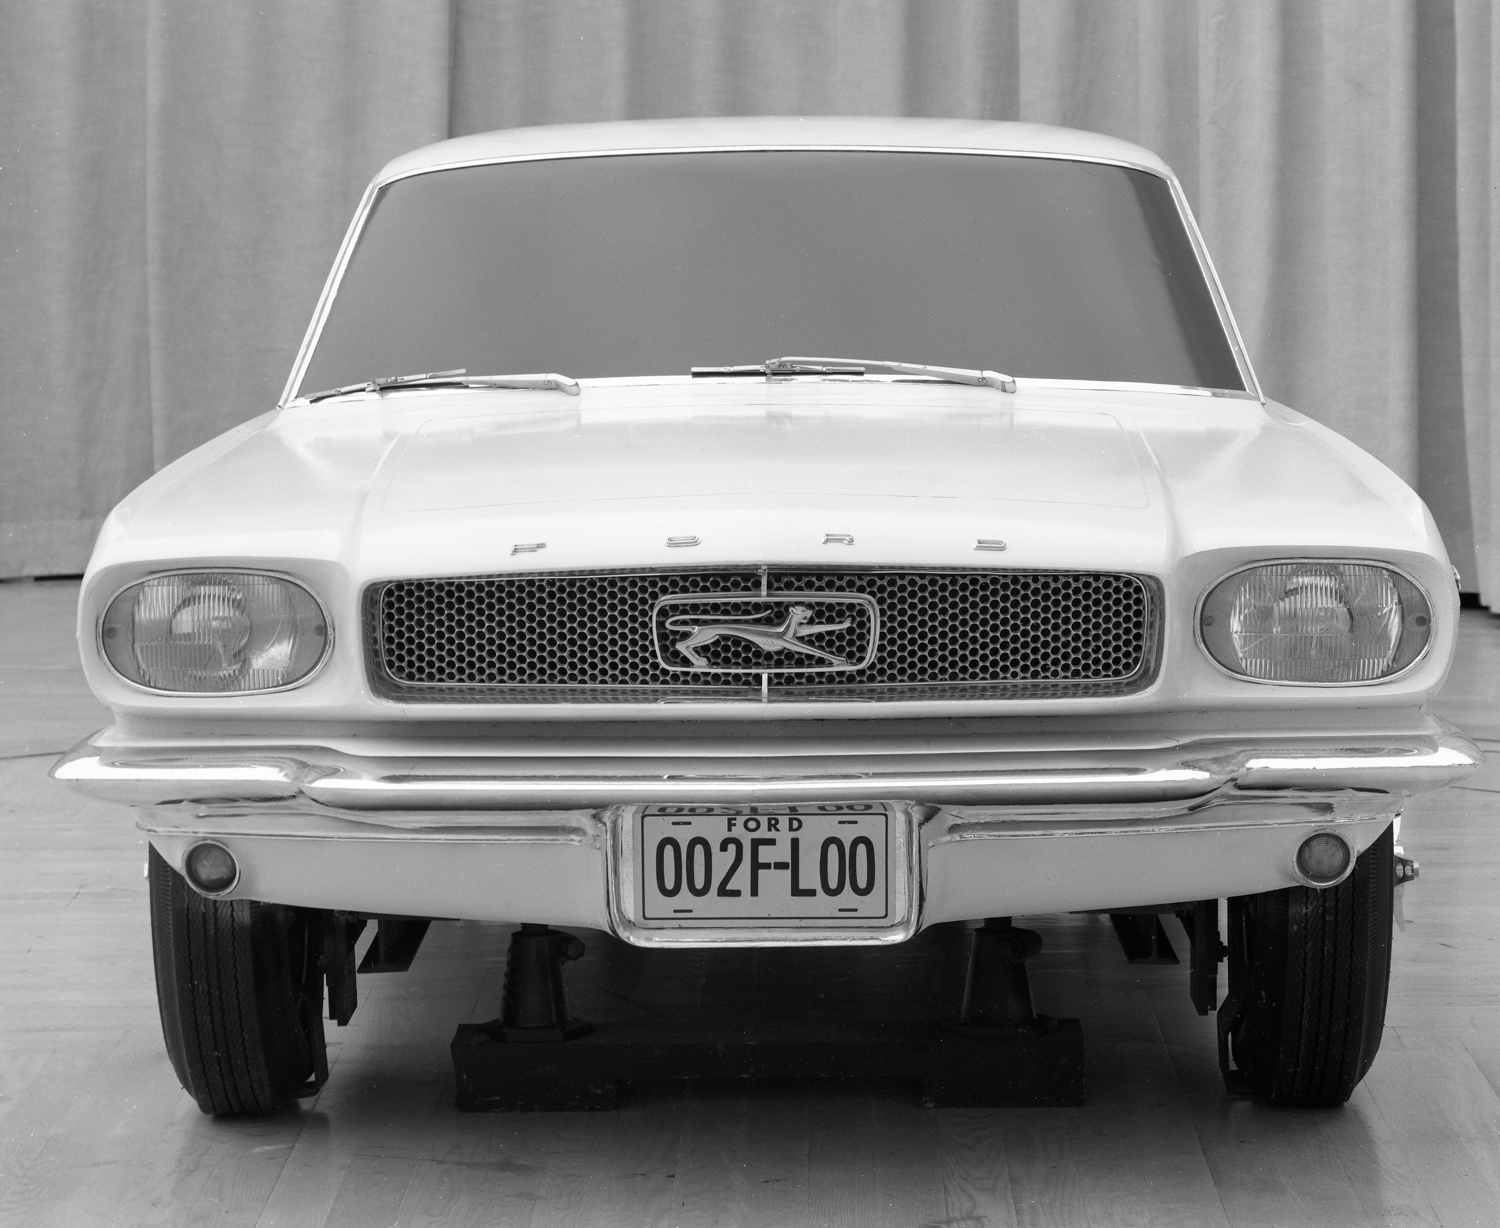 Ford Mustang cougar concept model front end